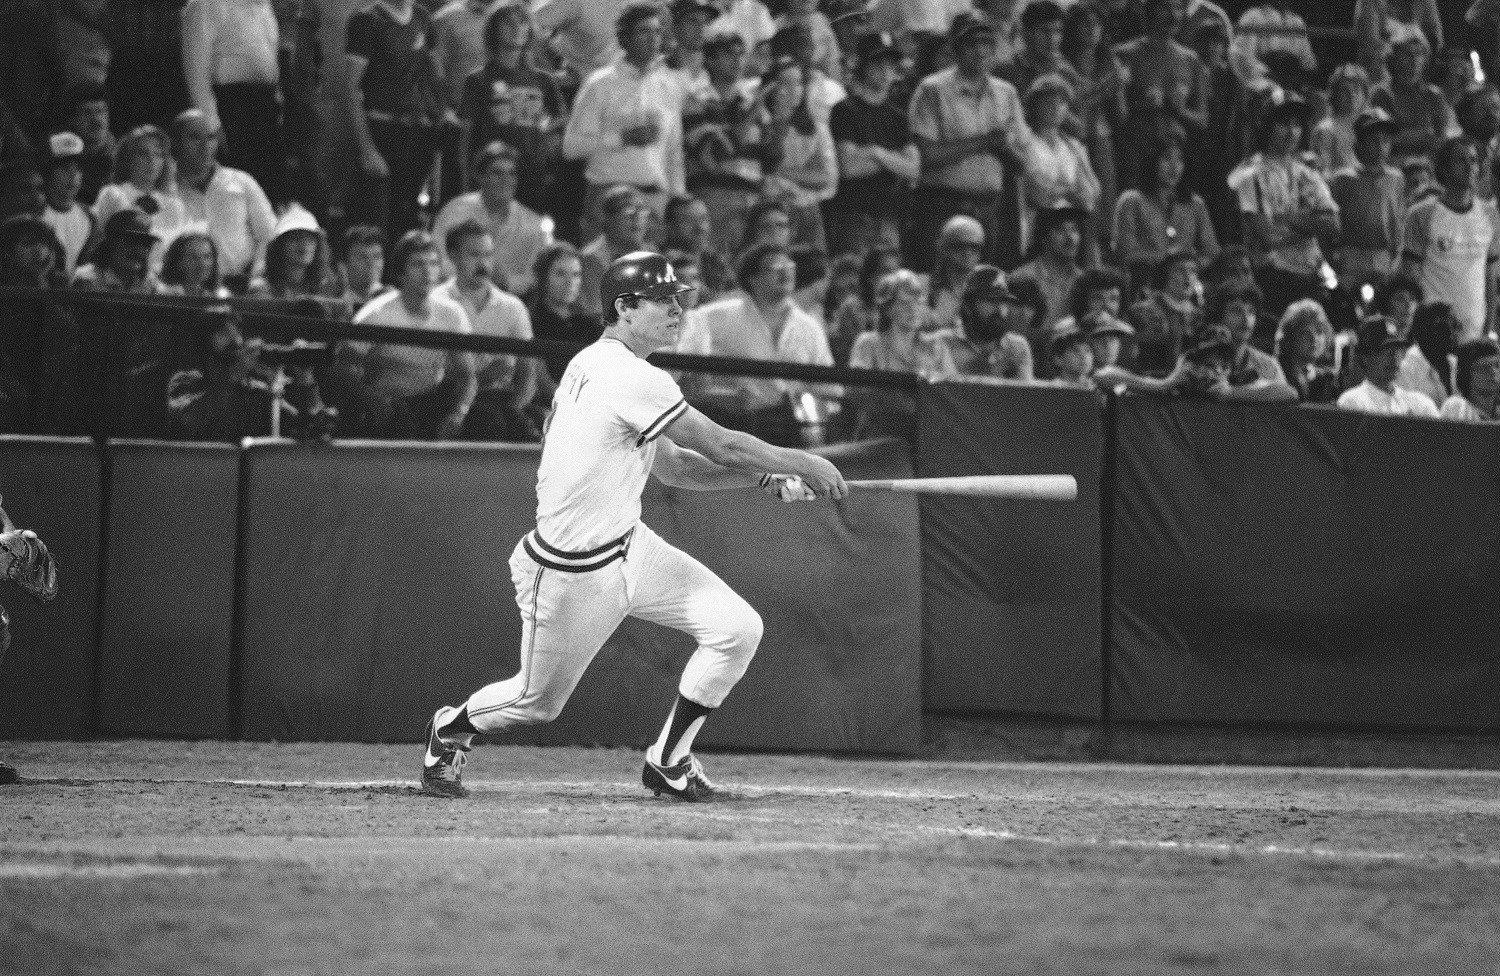 Atlanta Braves Dale Murphy (3) hits the winning home run in the bottom of the 10th inning with the bases loaded during Atlanta-Los Angeles action, Sept. 9, 1982, to give the Braves a 12-11 victory. (AP Photo/Roger Grigg)